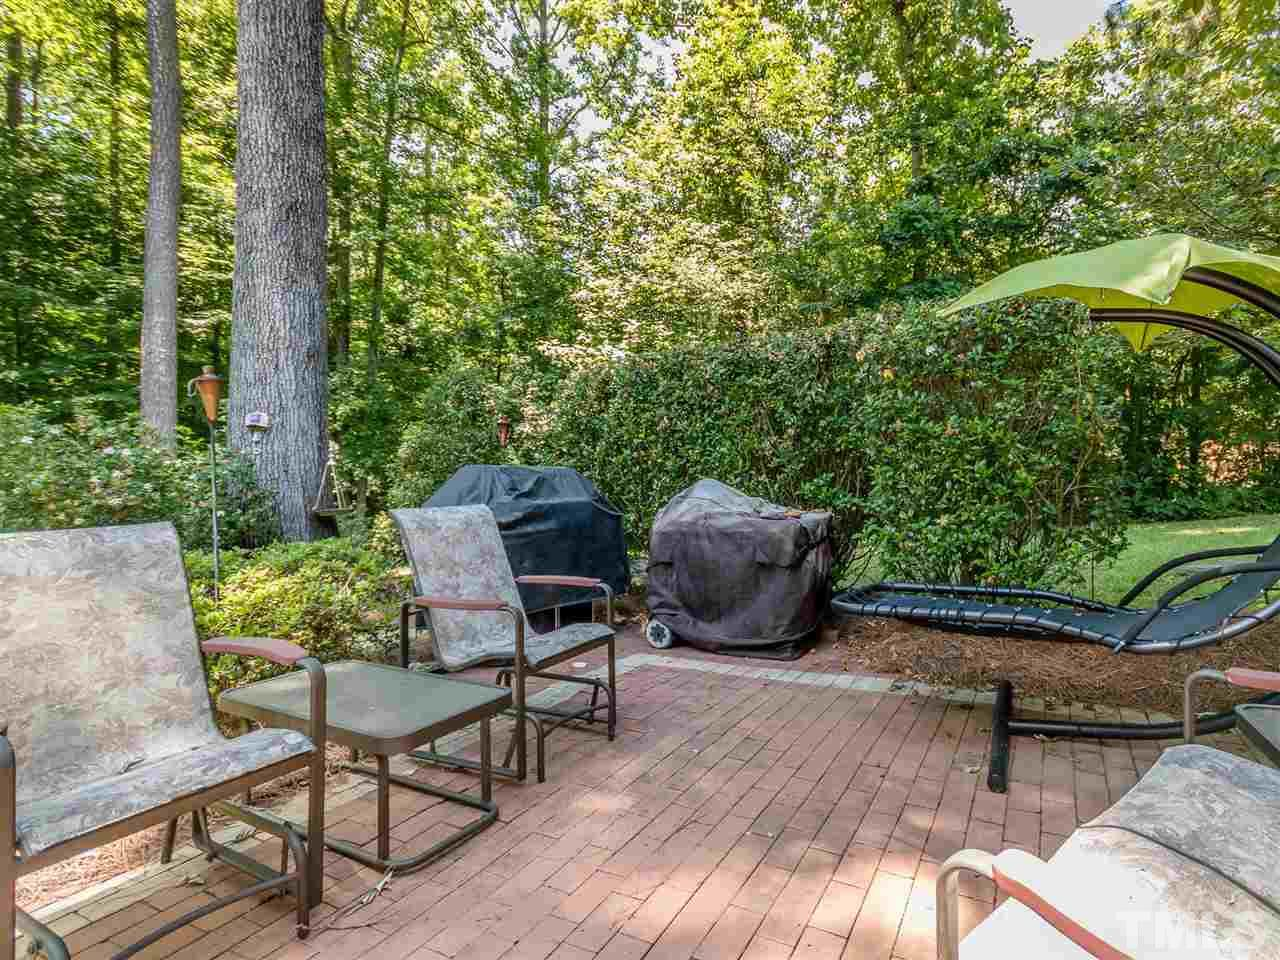 Brick patio offers additional entertaining space off the screened porch and provides grilling space for your outdoor chef.